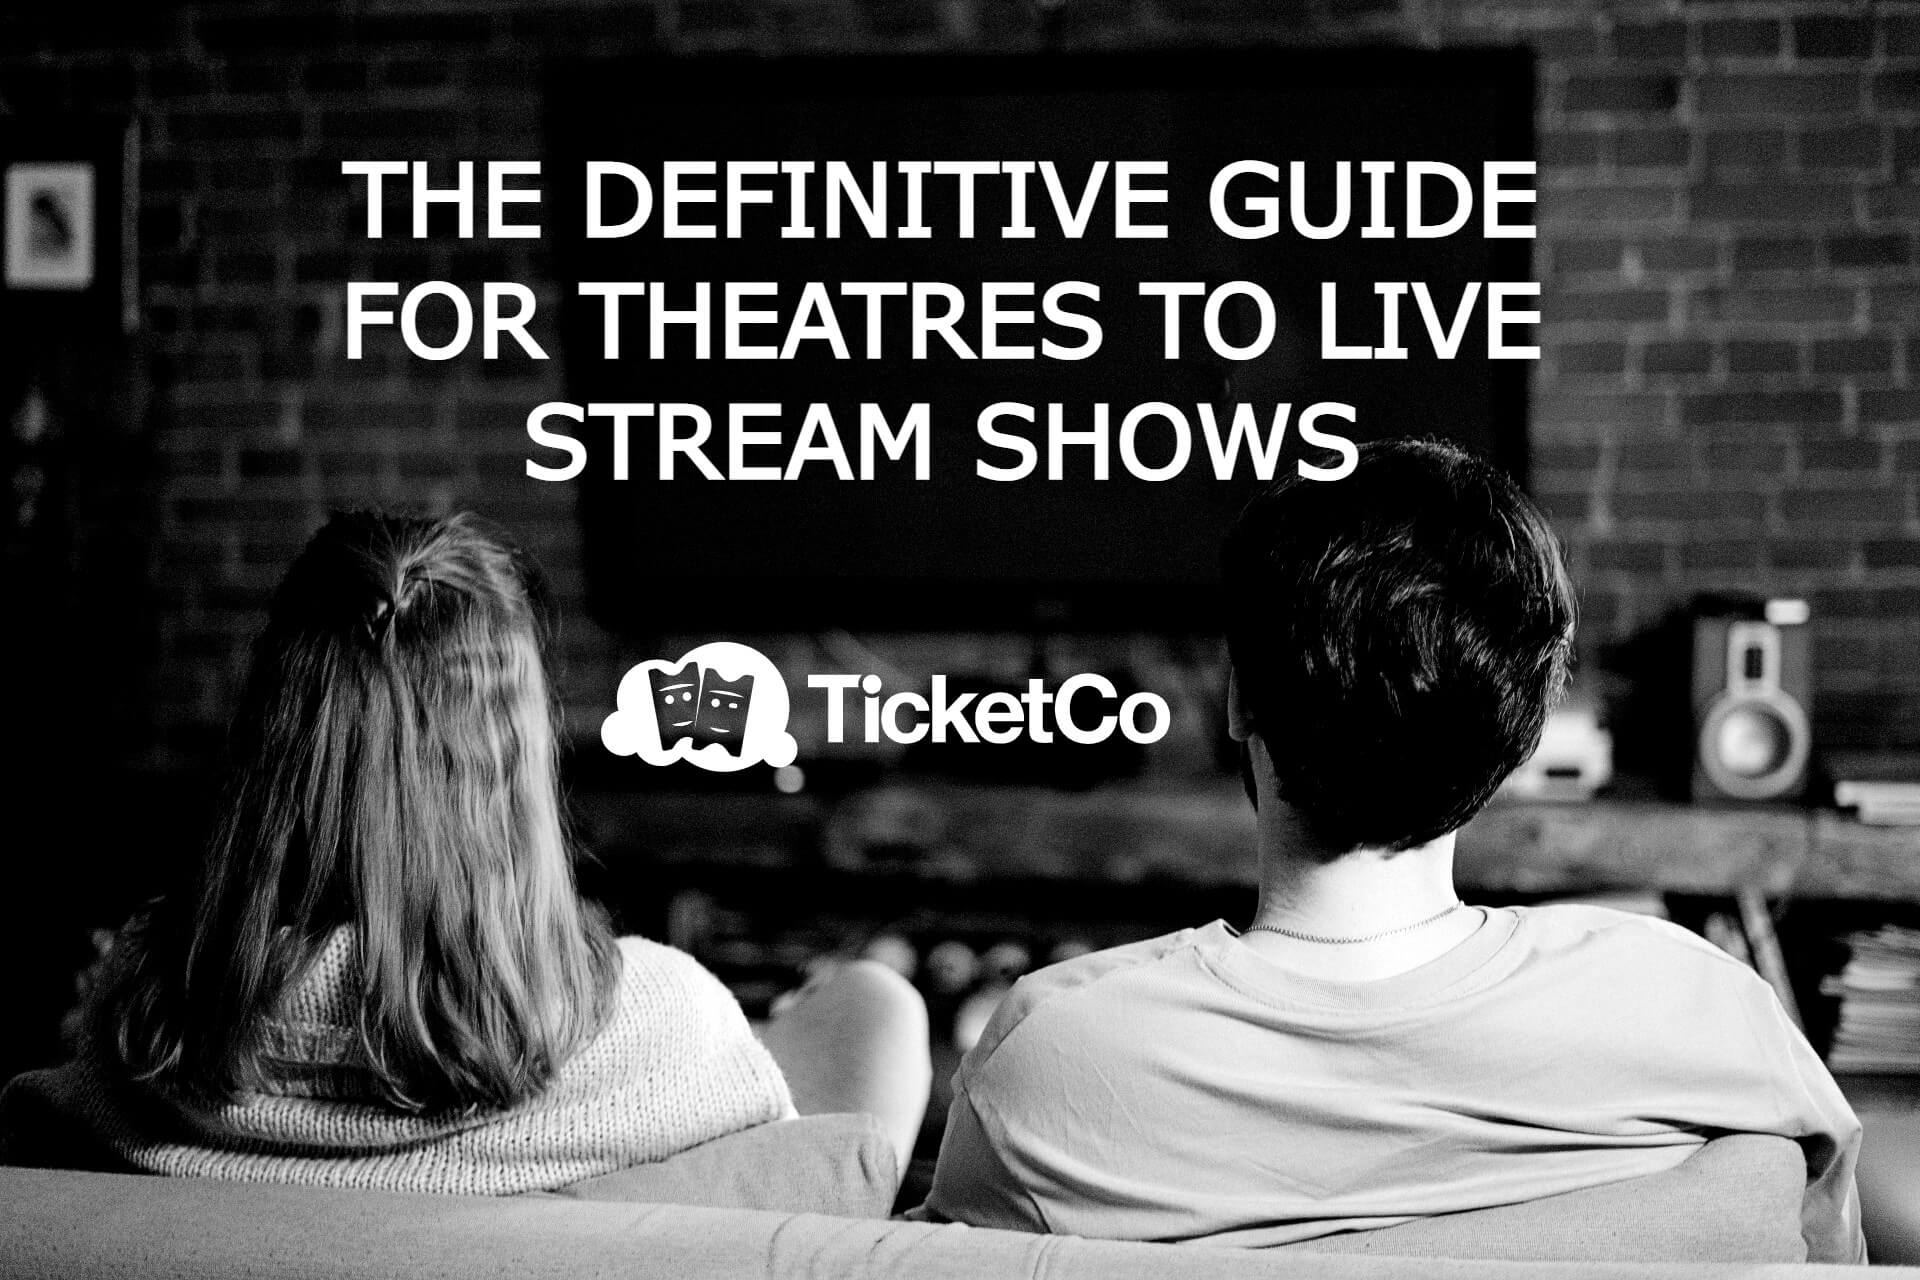 THE DEFINITIVE GUIDE FOR THEATRES TO LIVE STREAM SHOWS